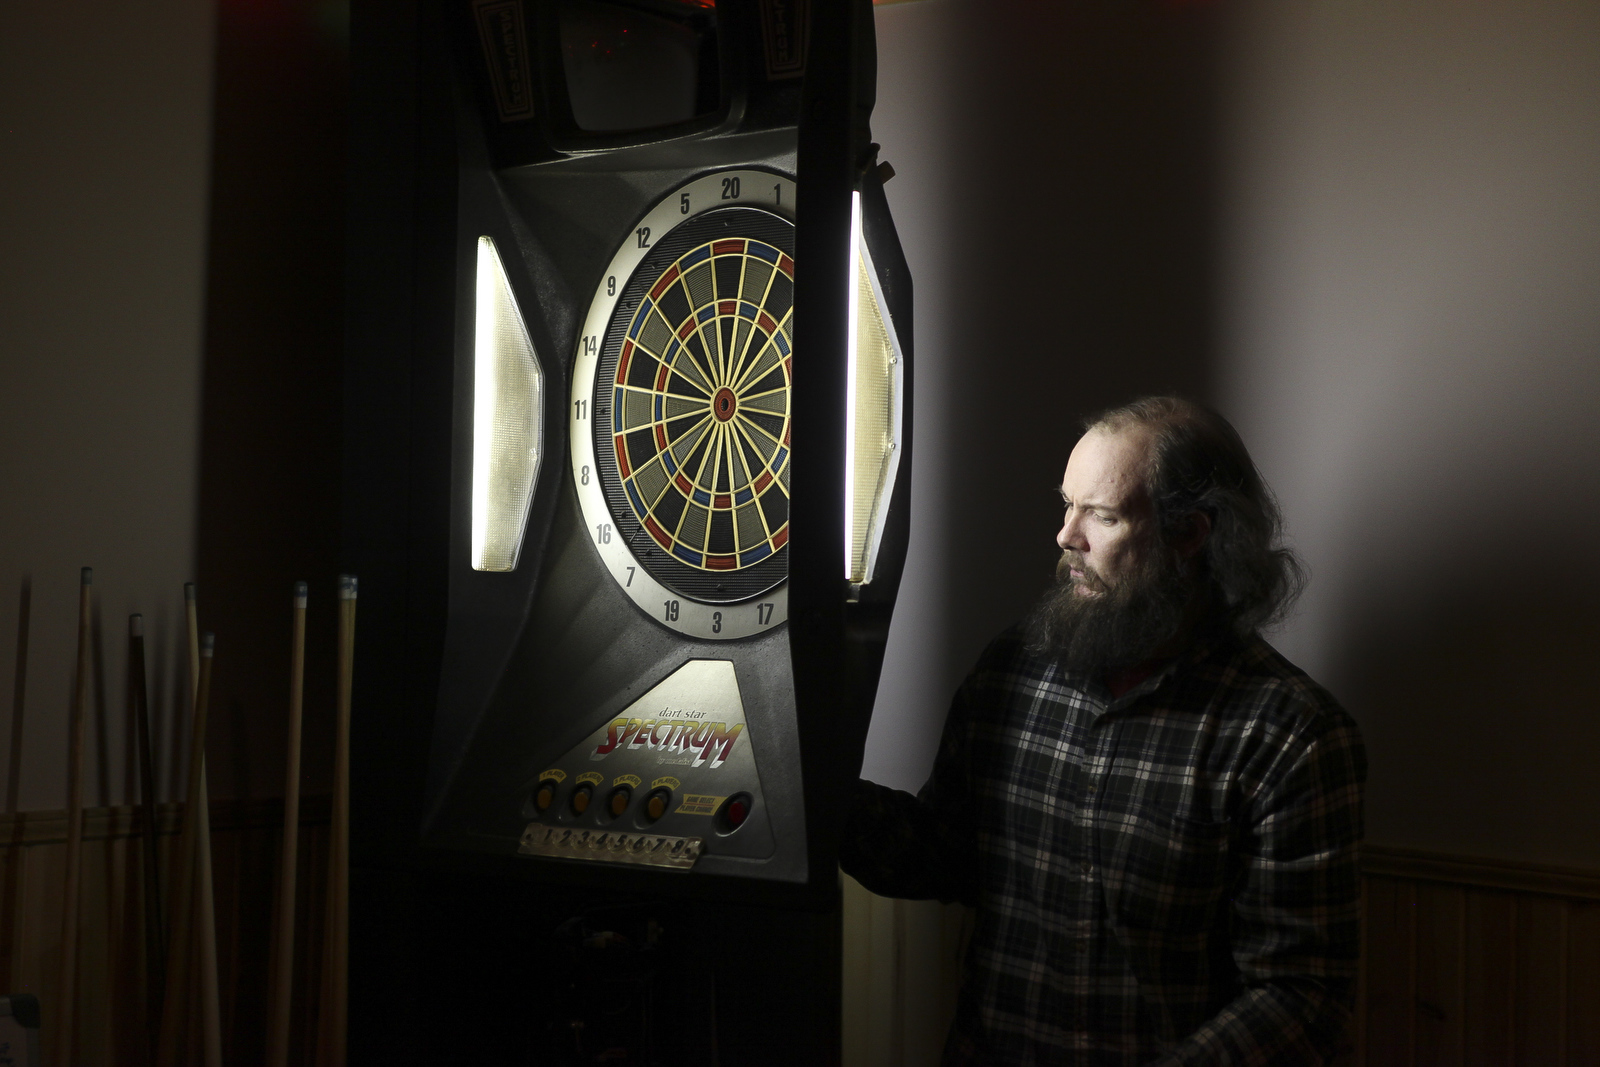 Jerramy Forrest fixes a dartboard at the Murray City American Legion. He travels throughout southeastern Ohio to replace electronic games. While Forrest was at the Legion, he also took a look at the jukebox to make sure it was working properly.